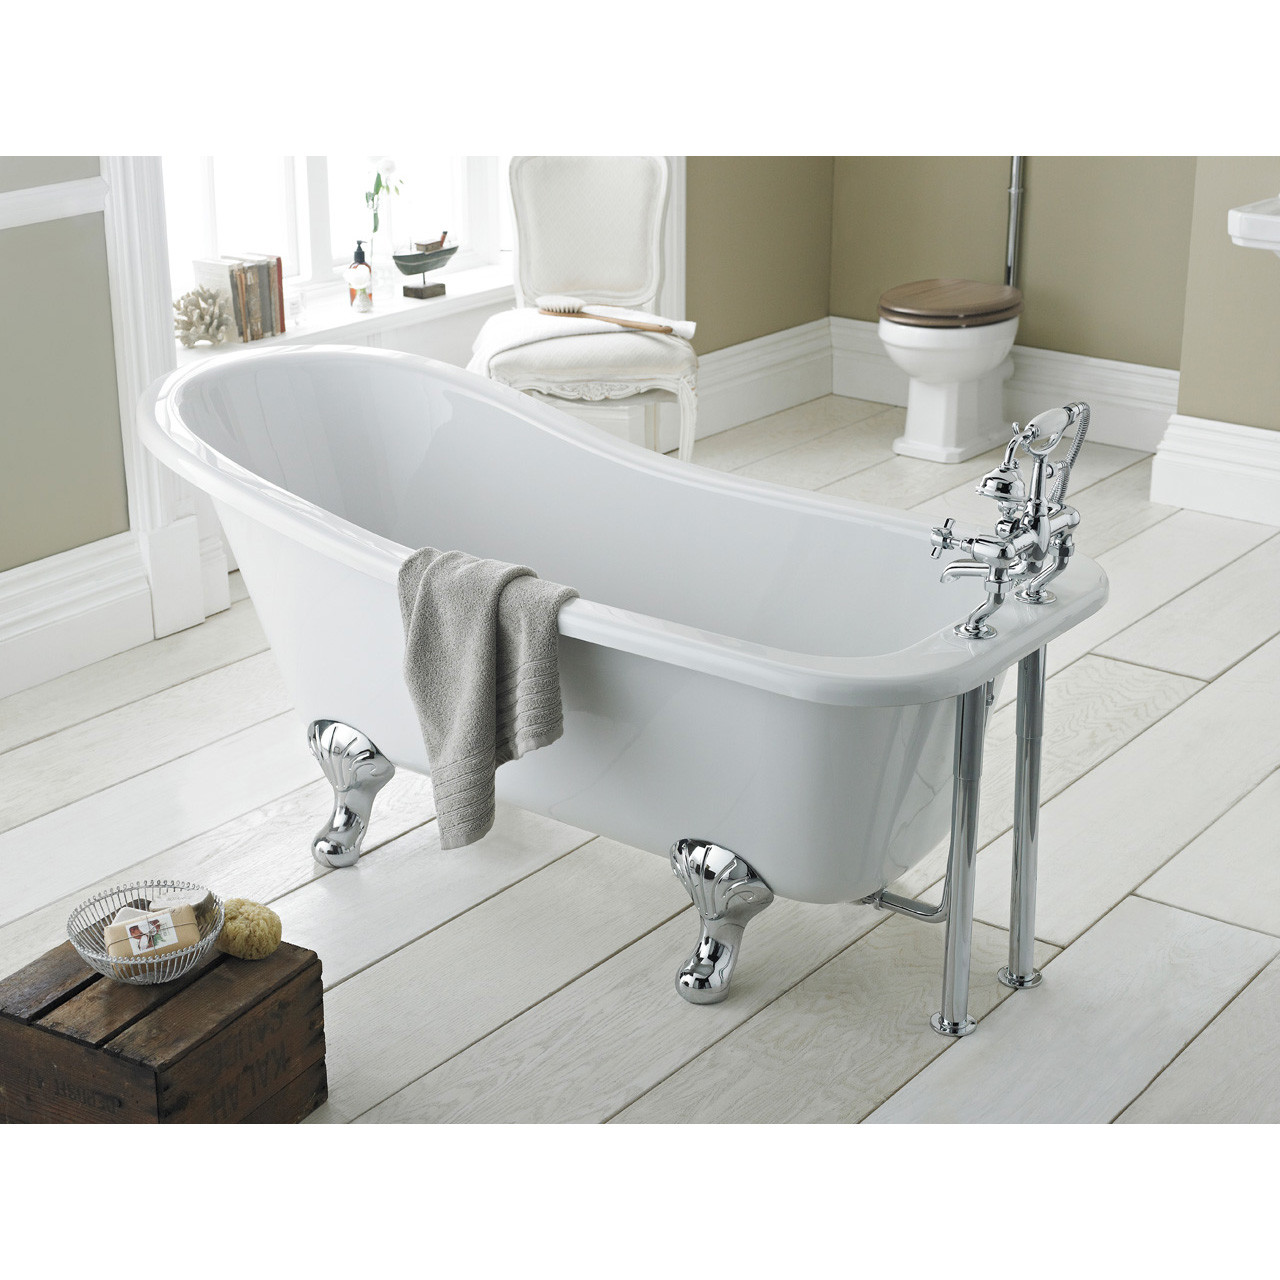 Nuie Brockley 1500mm Single Ended Freestanding Bath with Corbel Legs - RL1490T